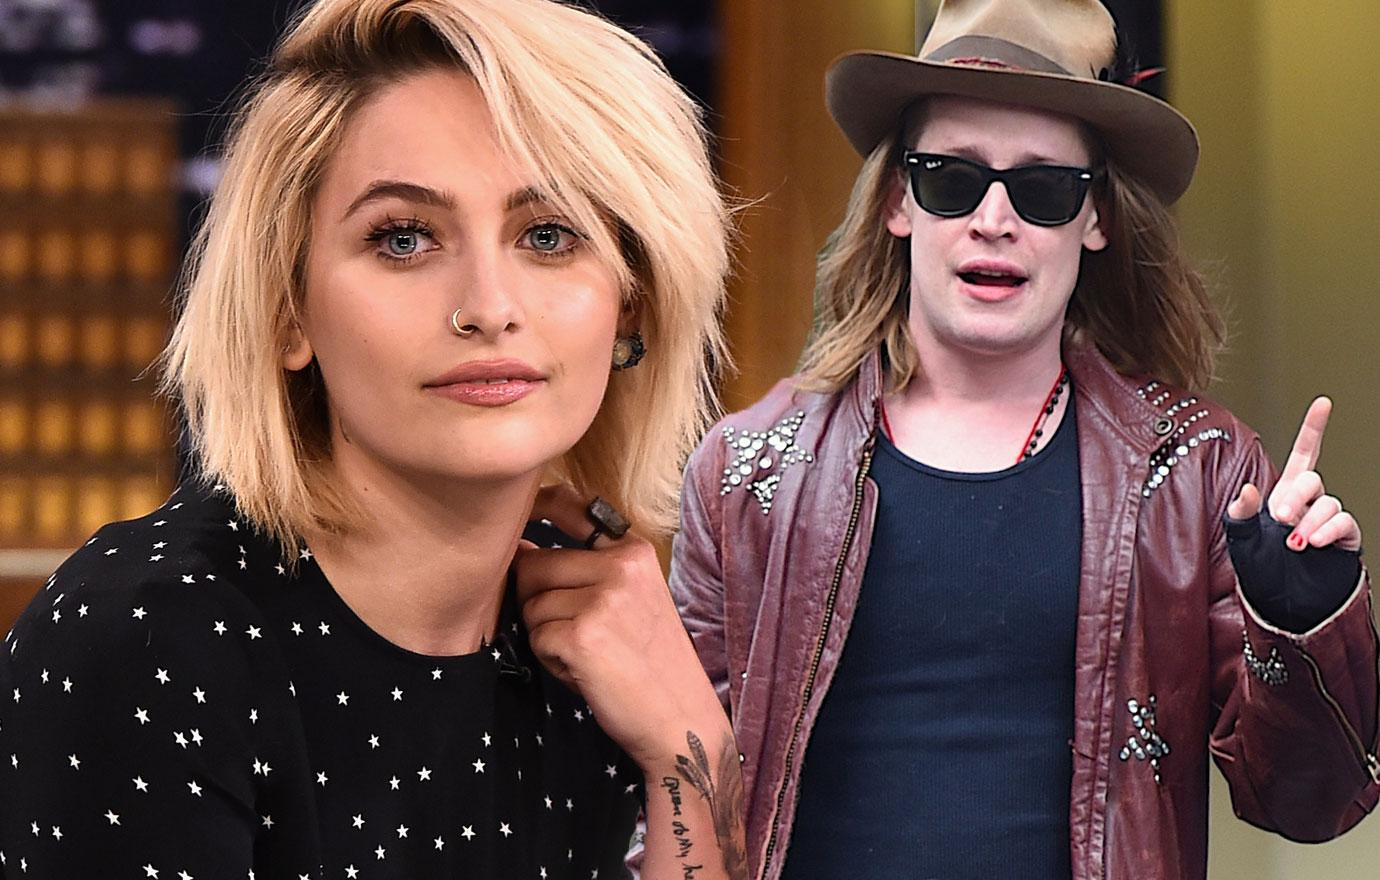 Paris Jackson And Macaulay Culkin Get Matching Spoon Tattoos